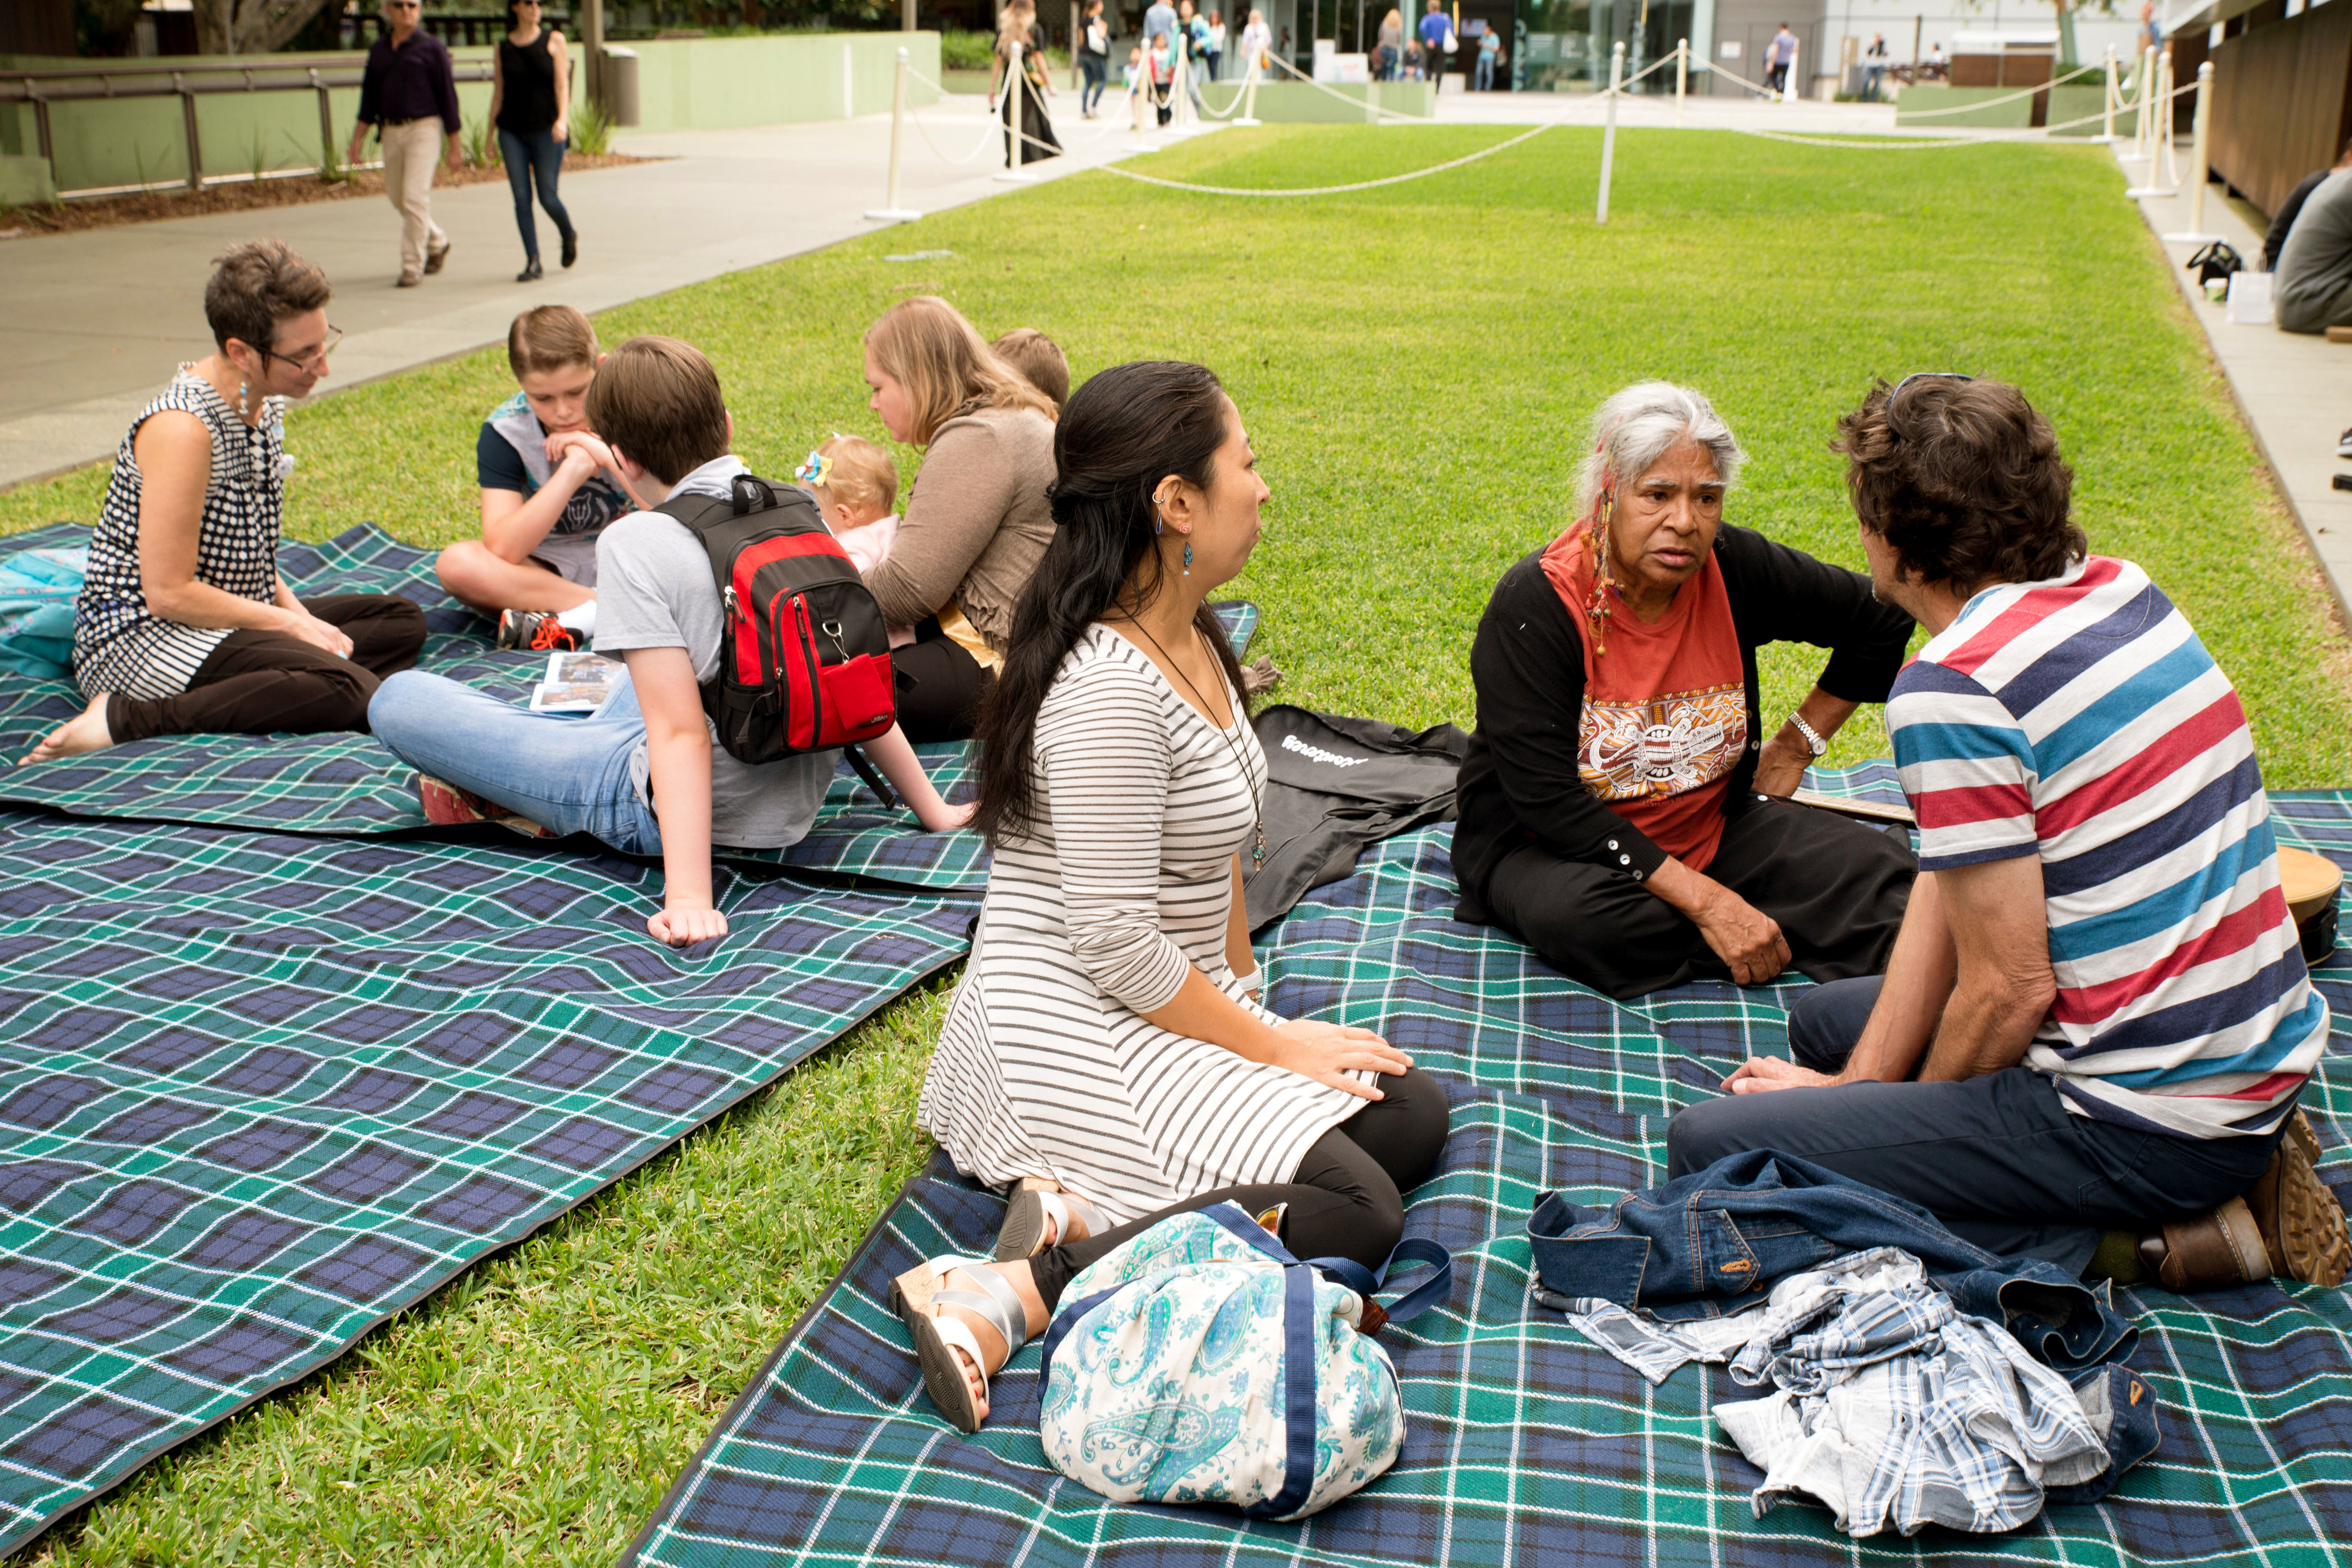 Group  of people sitting on the lawn talking